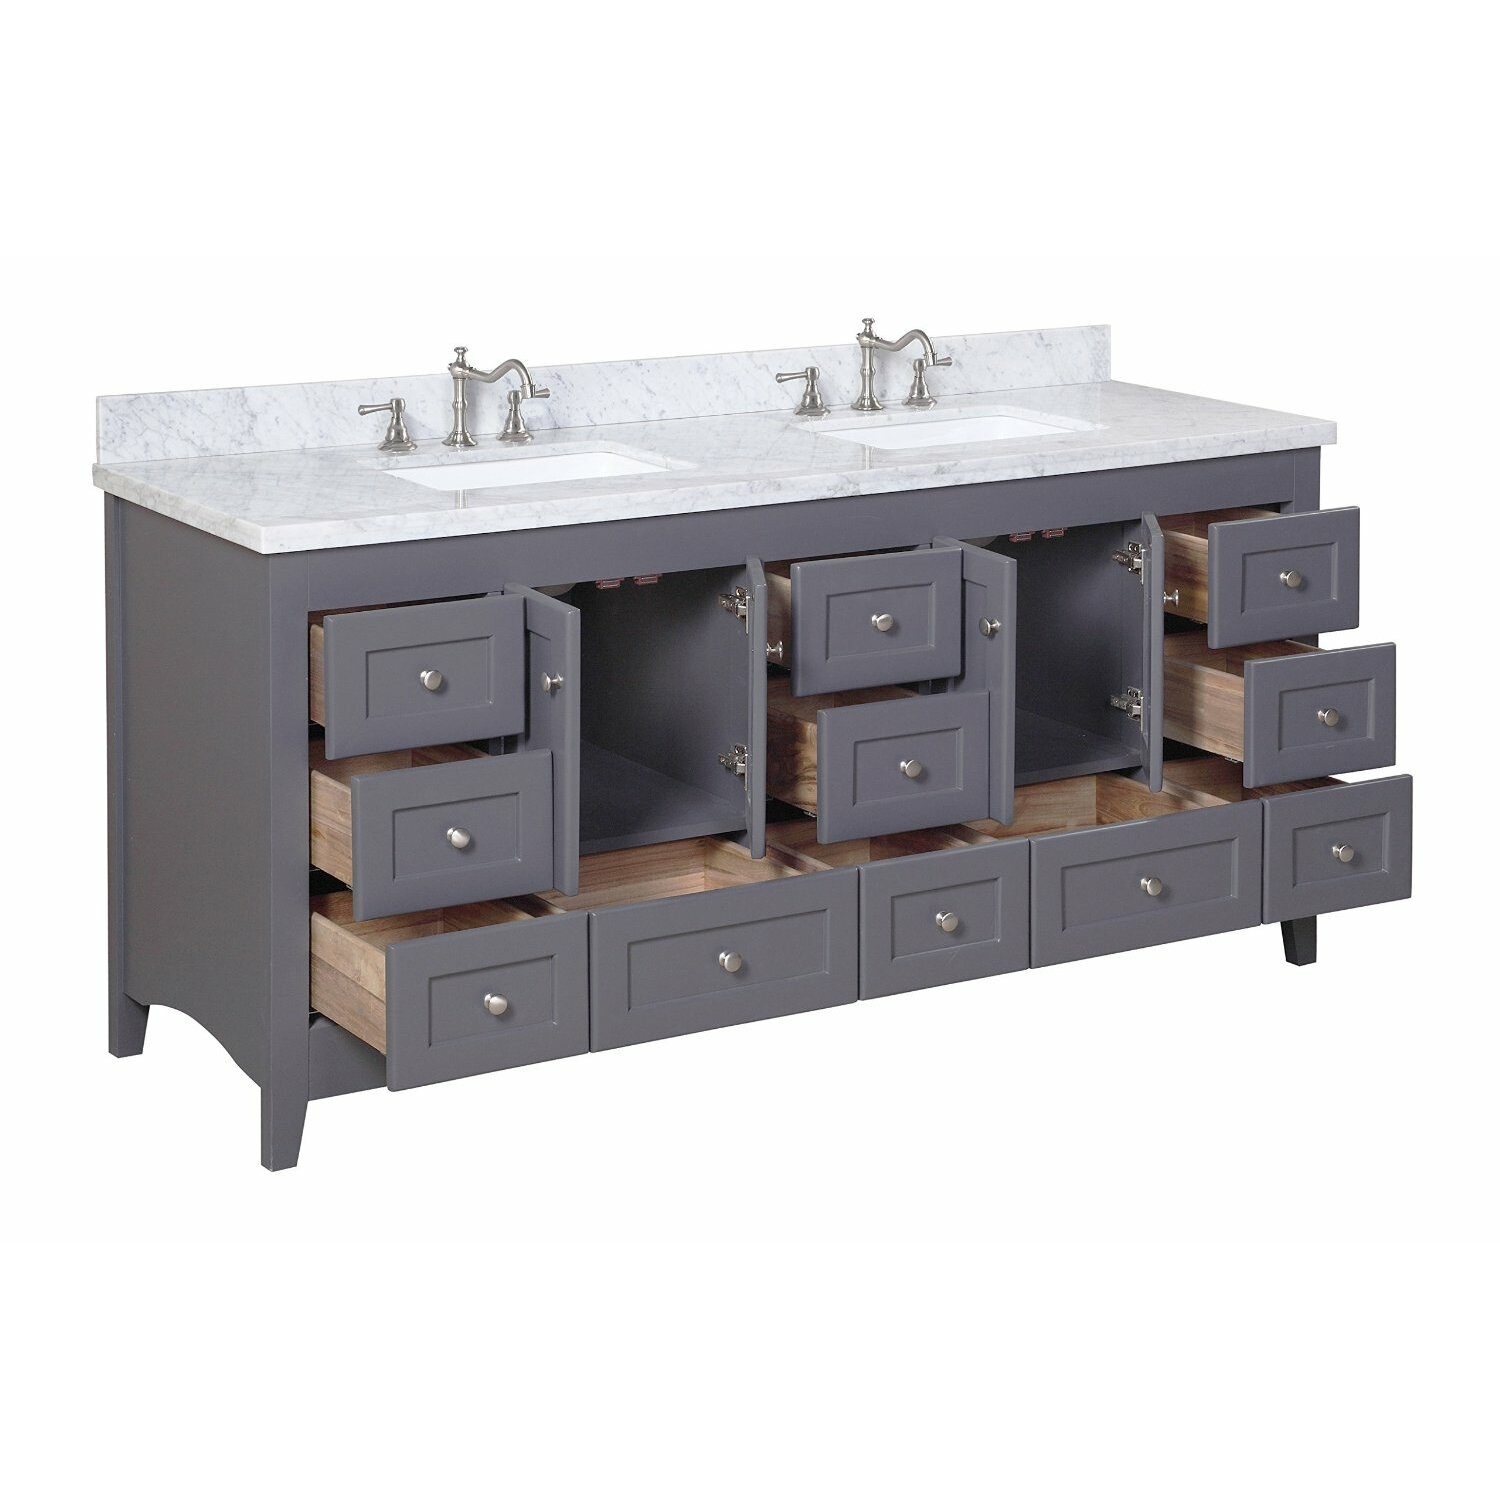 "Wayfair Bathroom Vanity >> KBC Abbey 72"" Double Bathroom Vanity Set & Reviews 